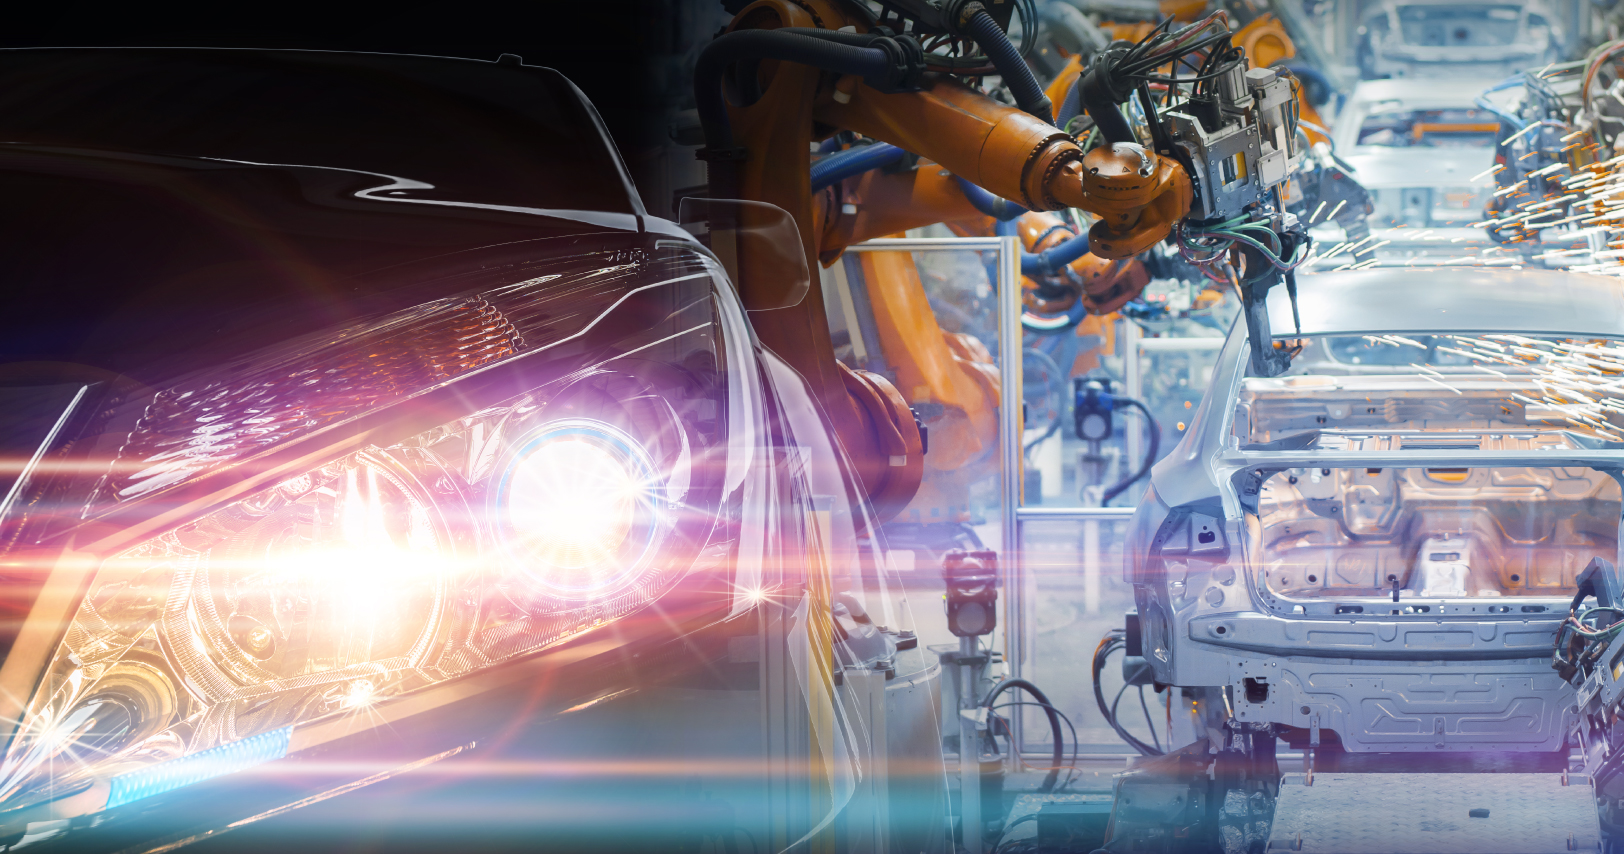 The Future of Automotive Manufacturing is Now